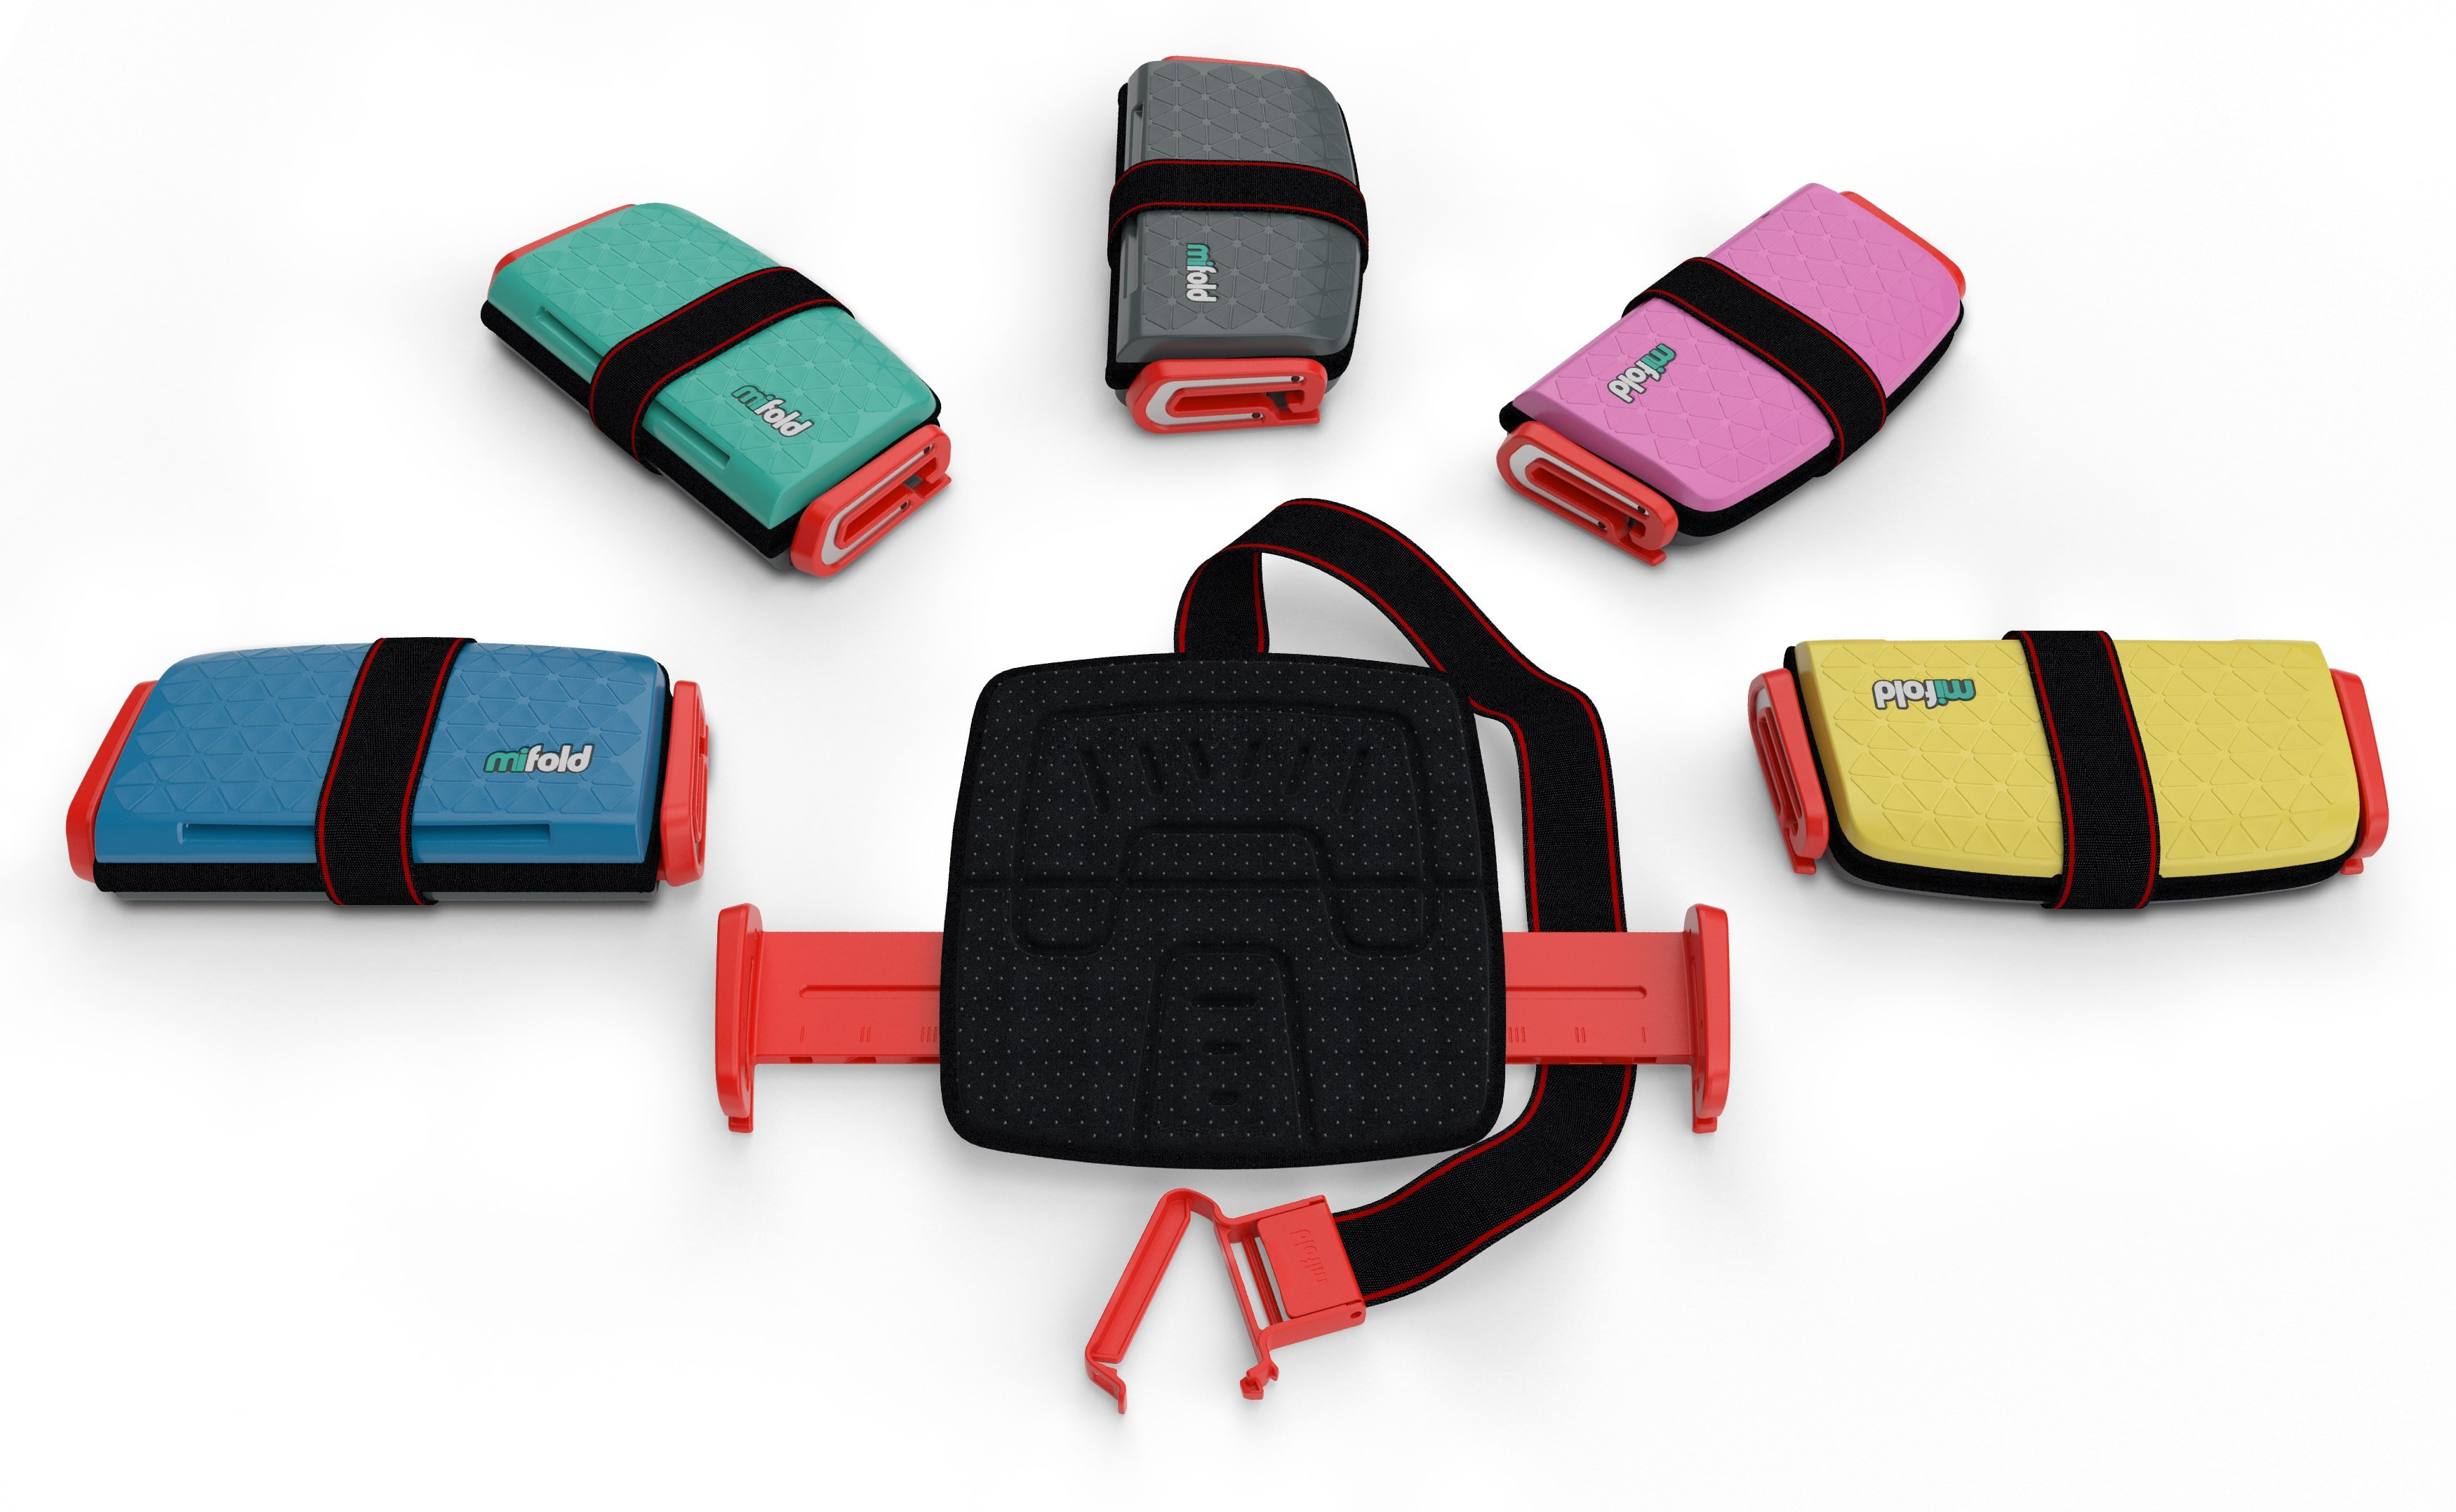 Mifold Car Booster Seat Giveaway Hifold Announcement